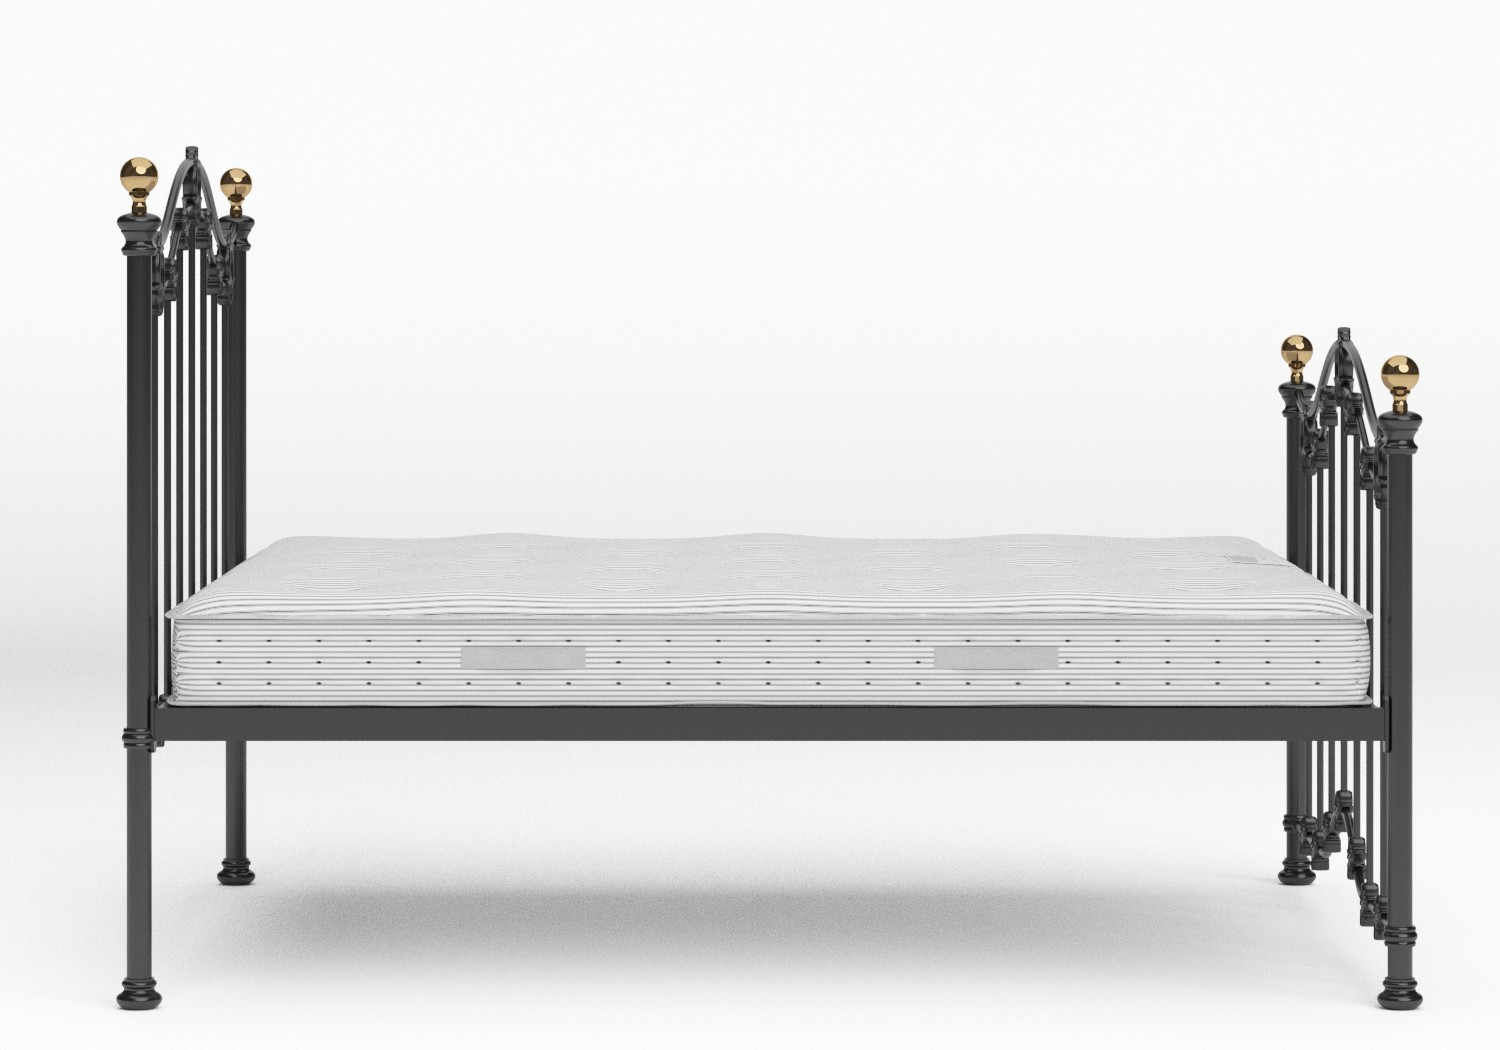 Clarina Iron/Metal Bed in Satin Black with brass details shown with Juno 1 mattress